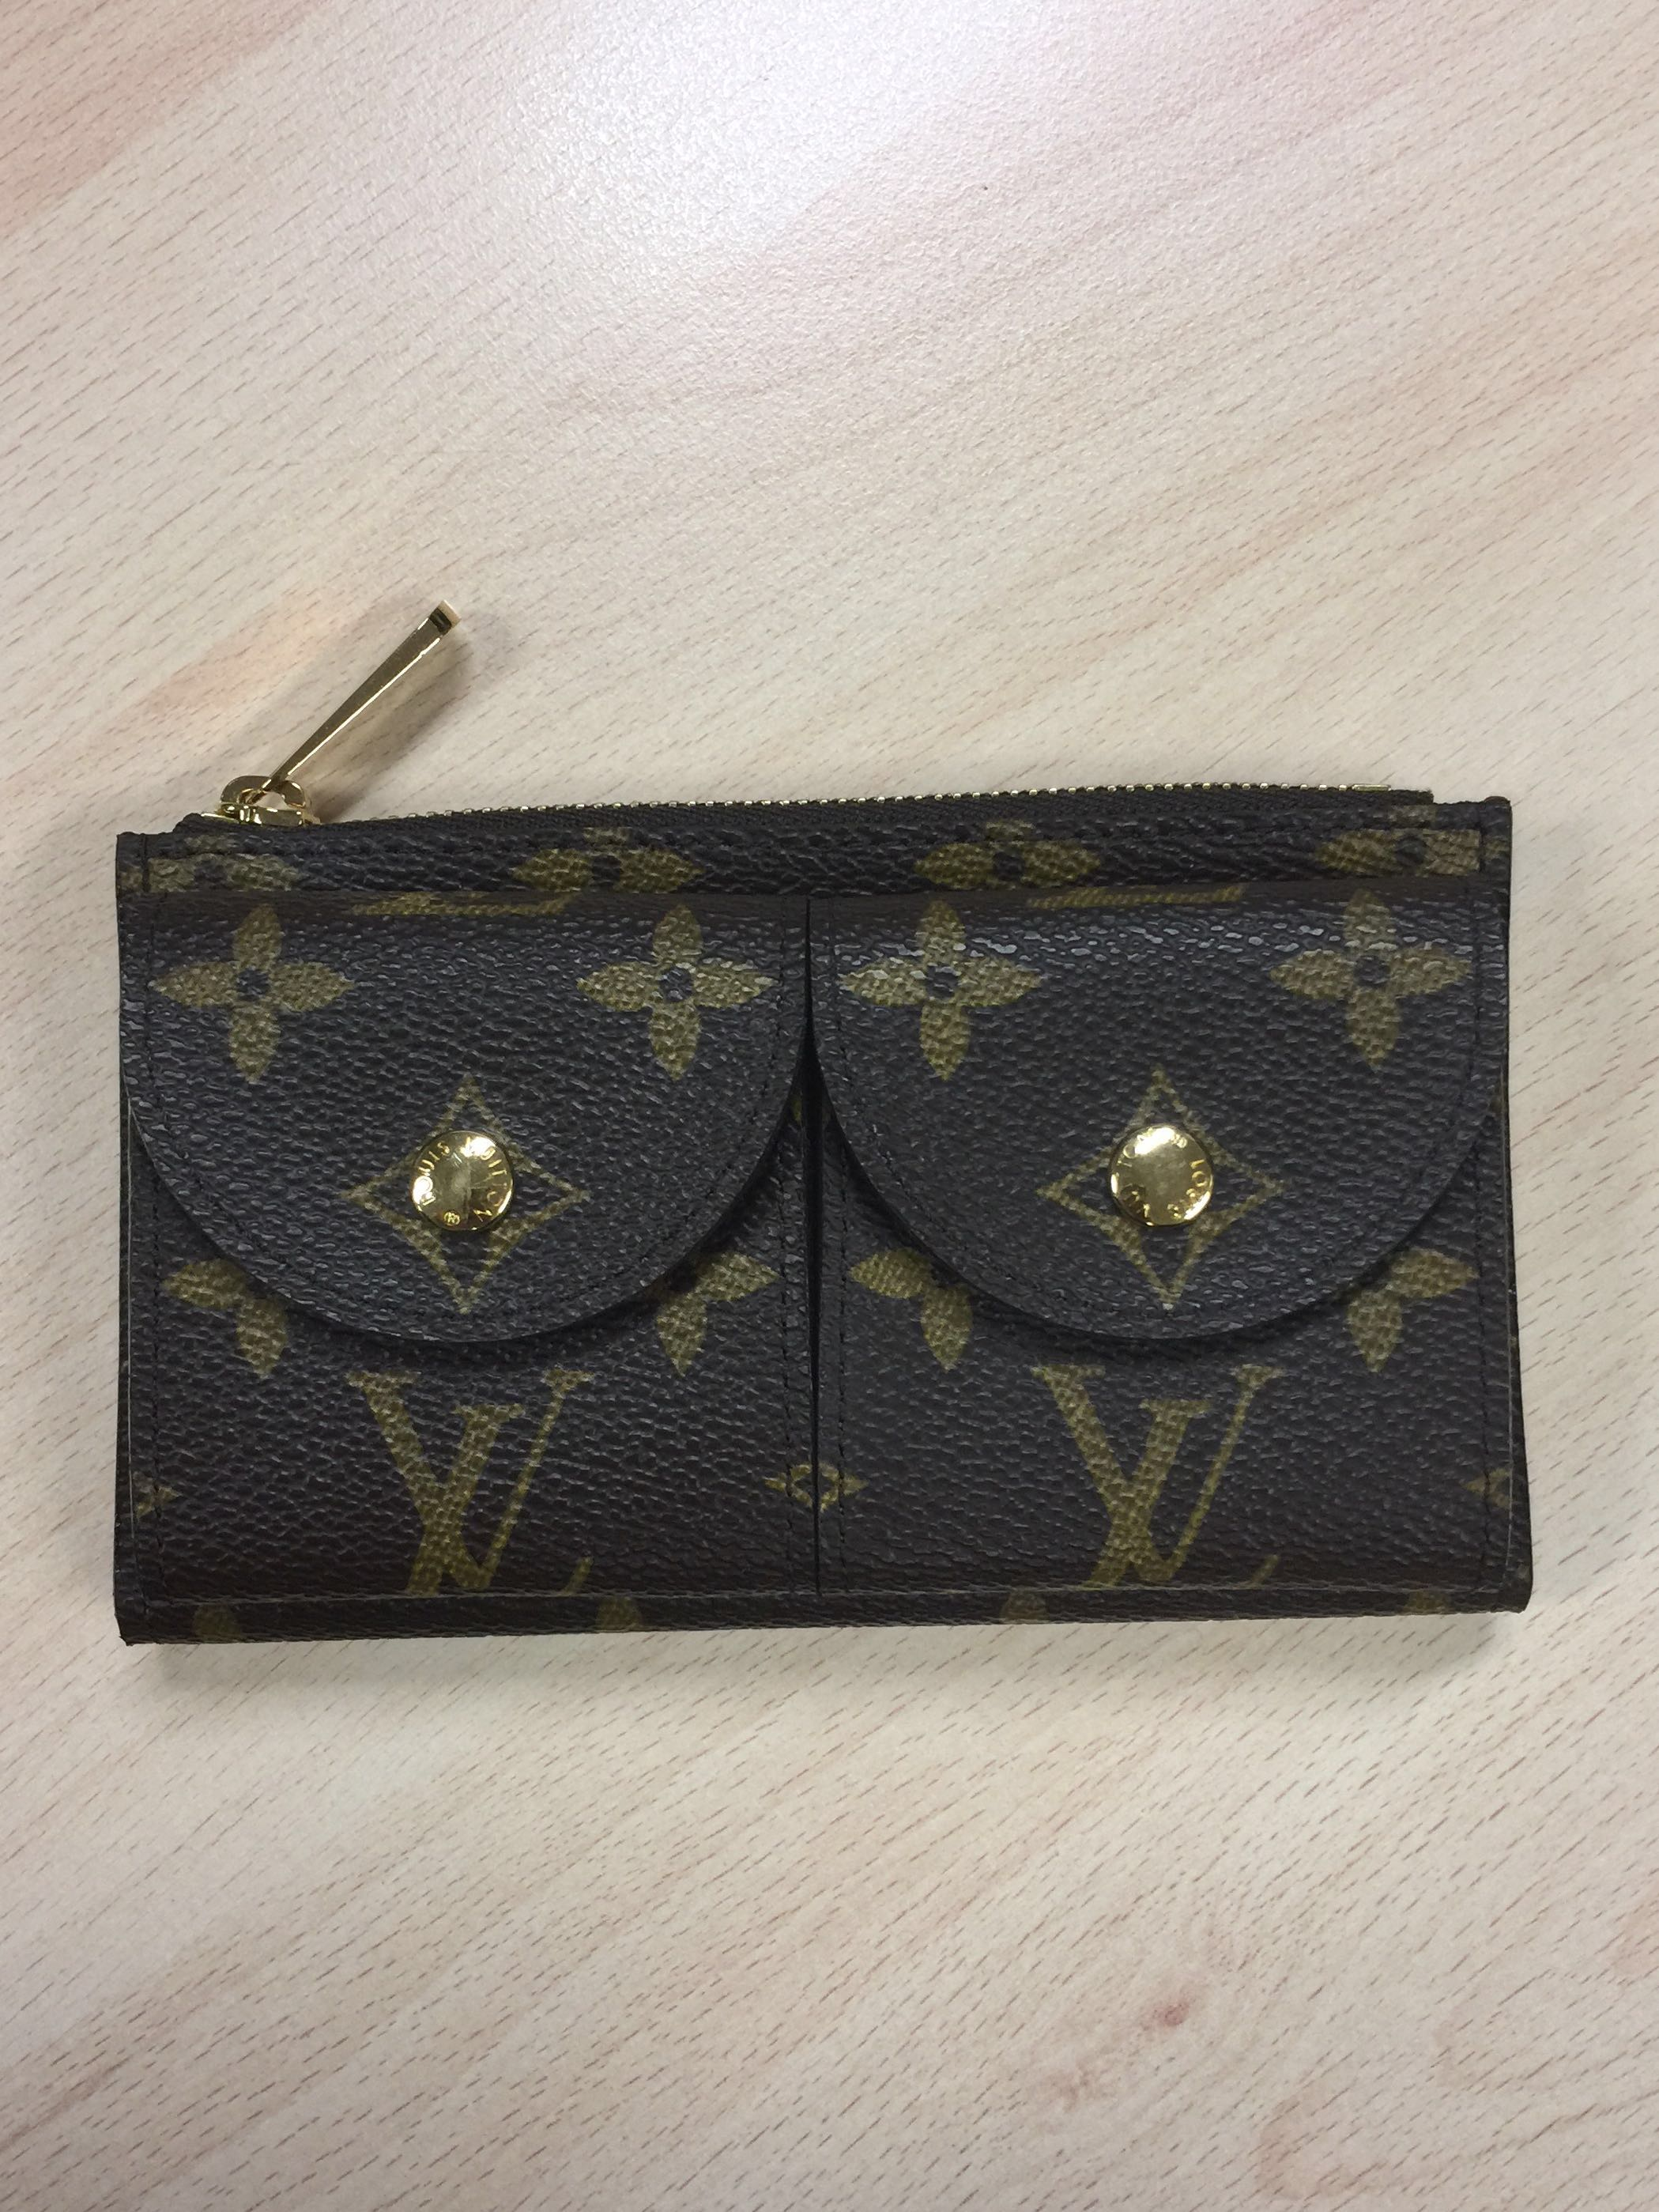 0a36a1922cfd Authentic Louis Vuitton LV Monogram Card Coin Wallet Purse for 38mm ...